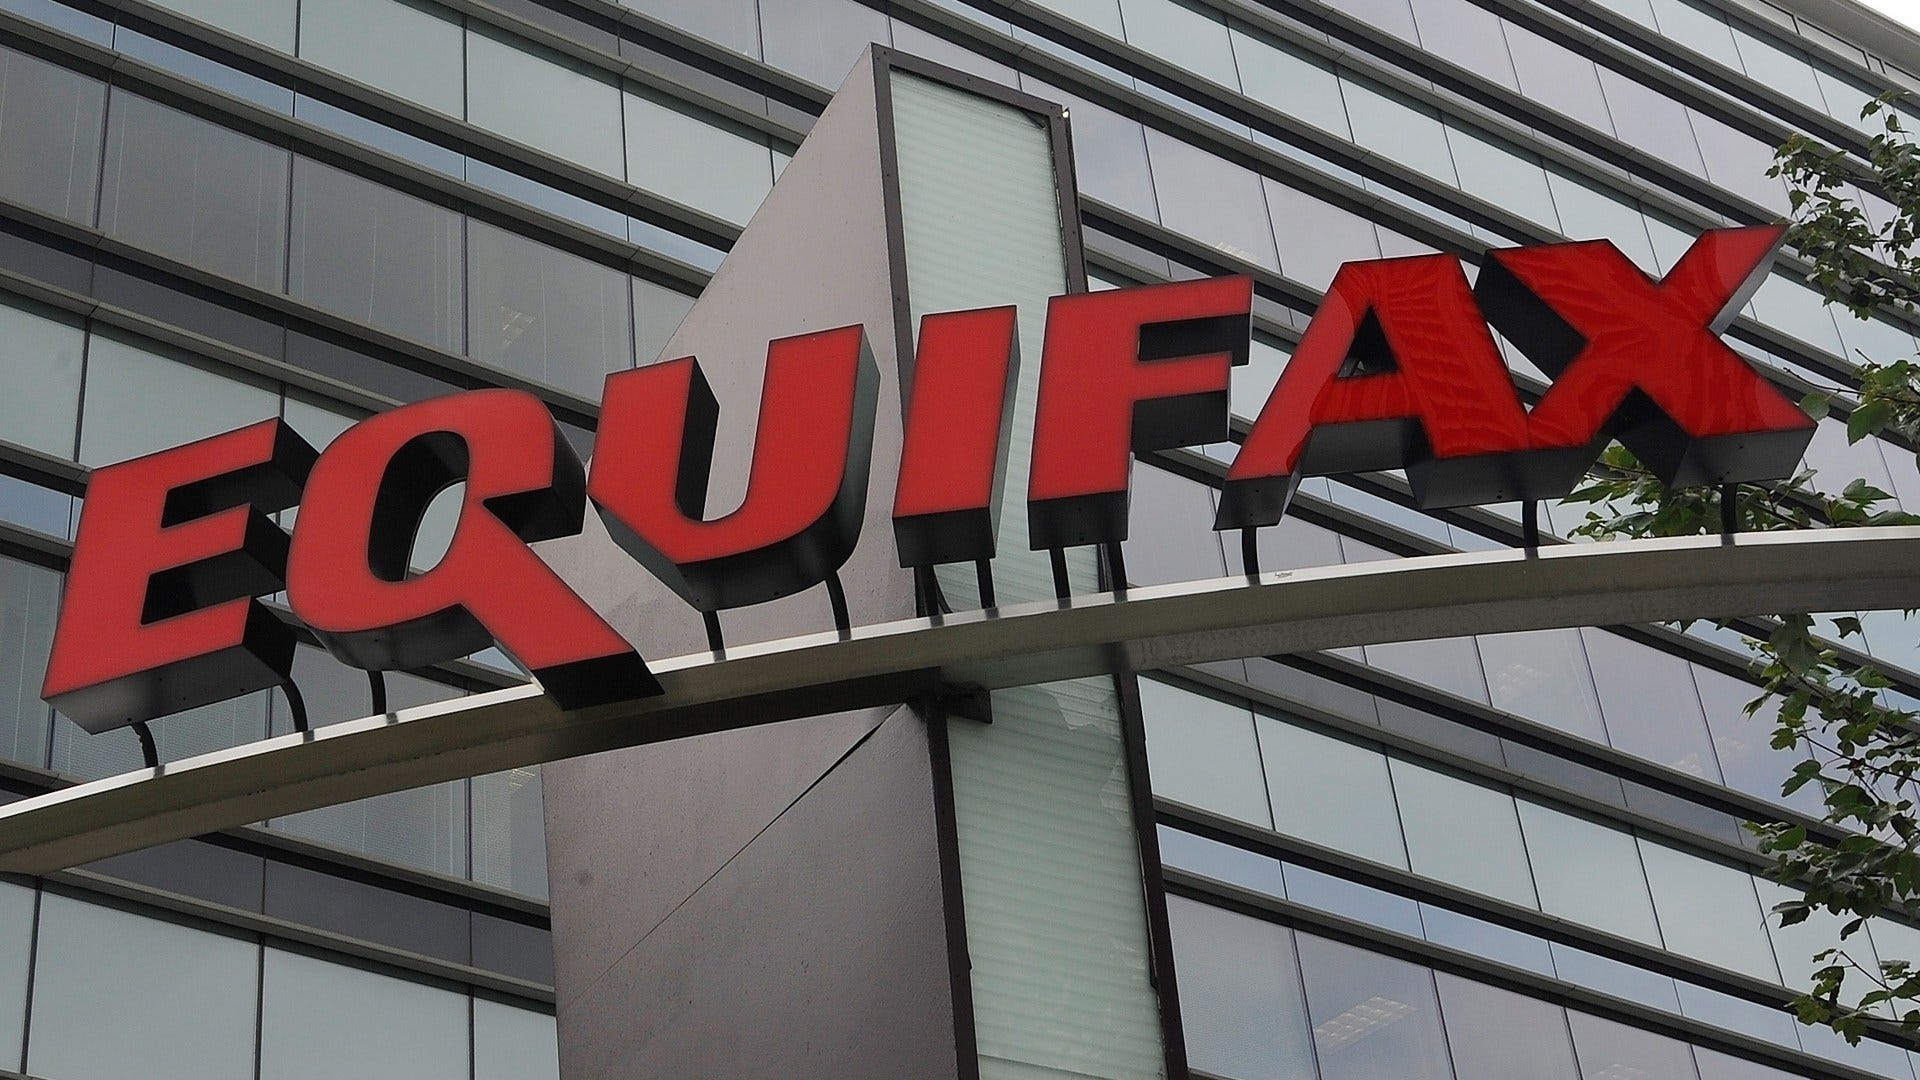 Wednesday Is The Deadline To File Your Claim For Equifax Data Breach Settlement